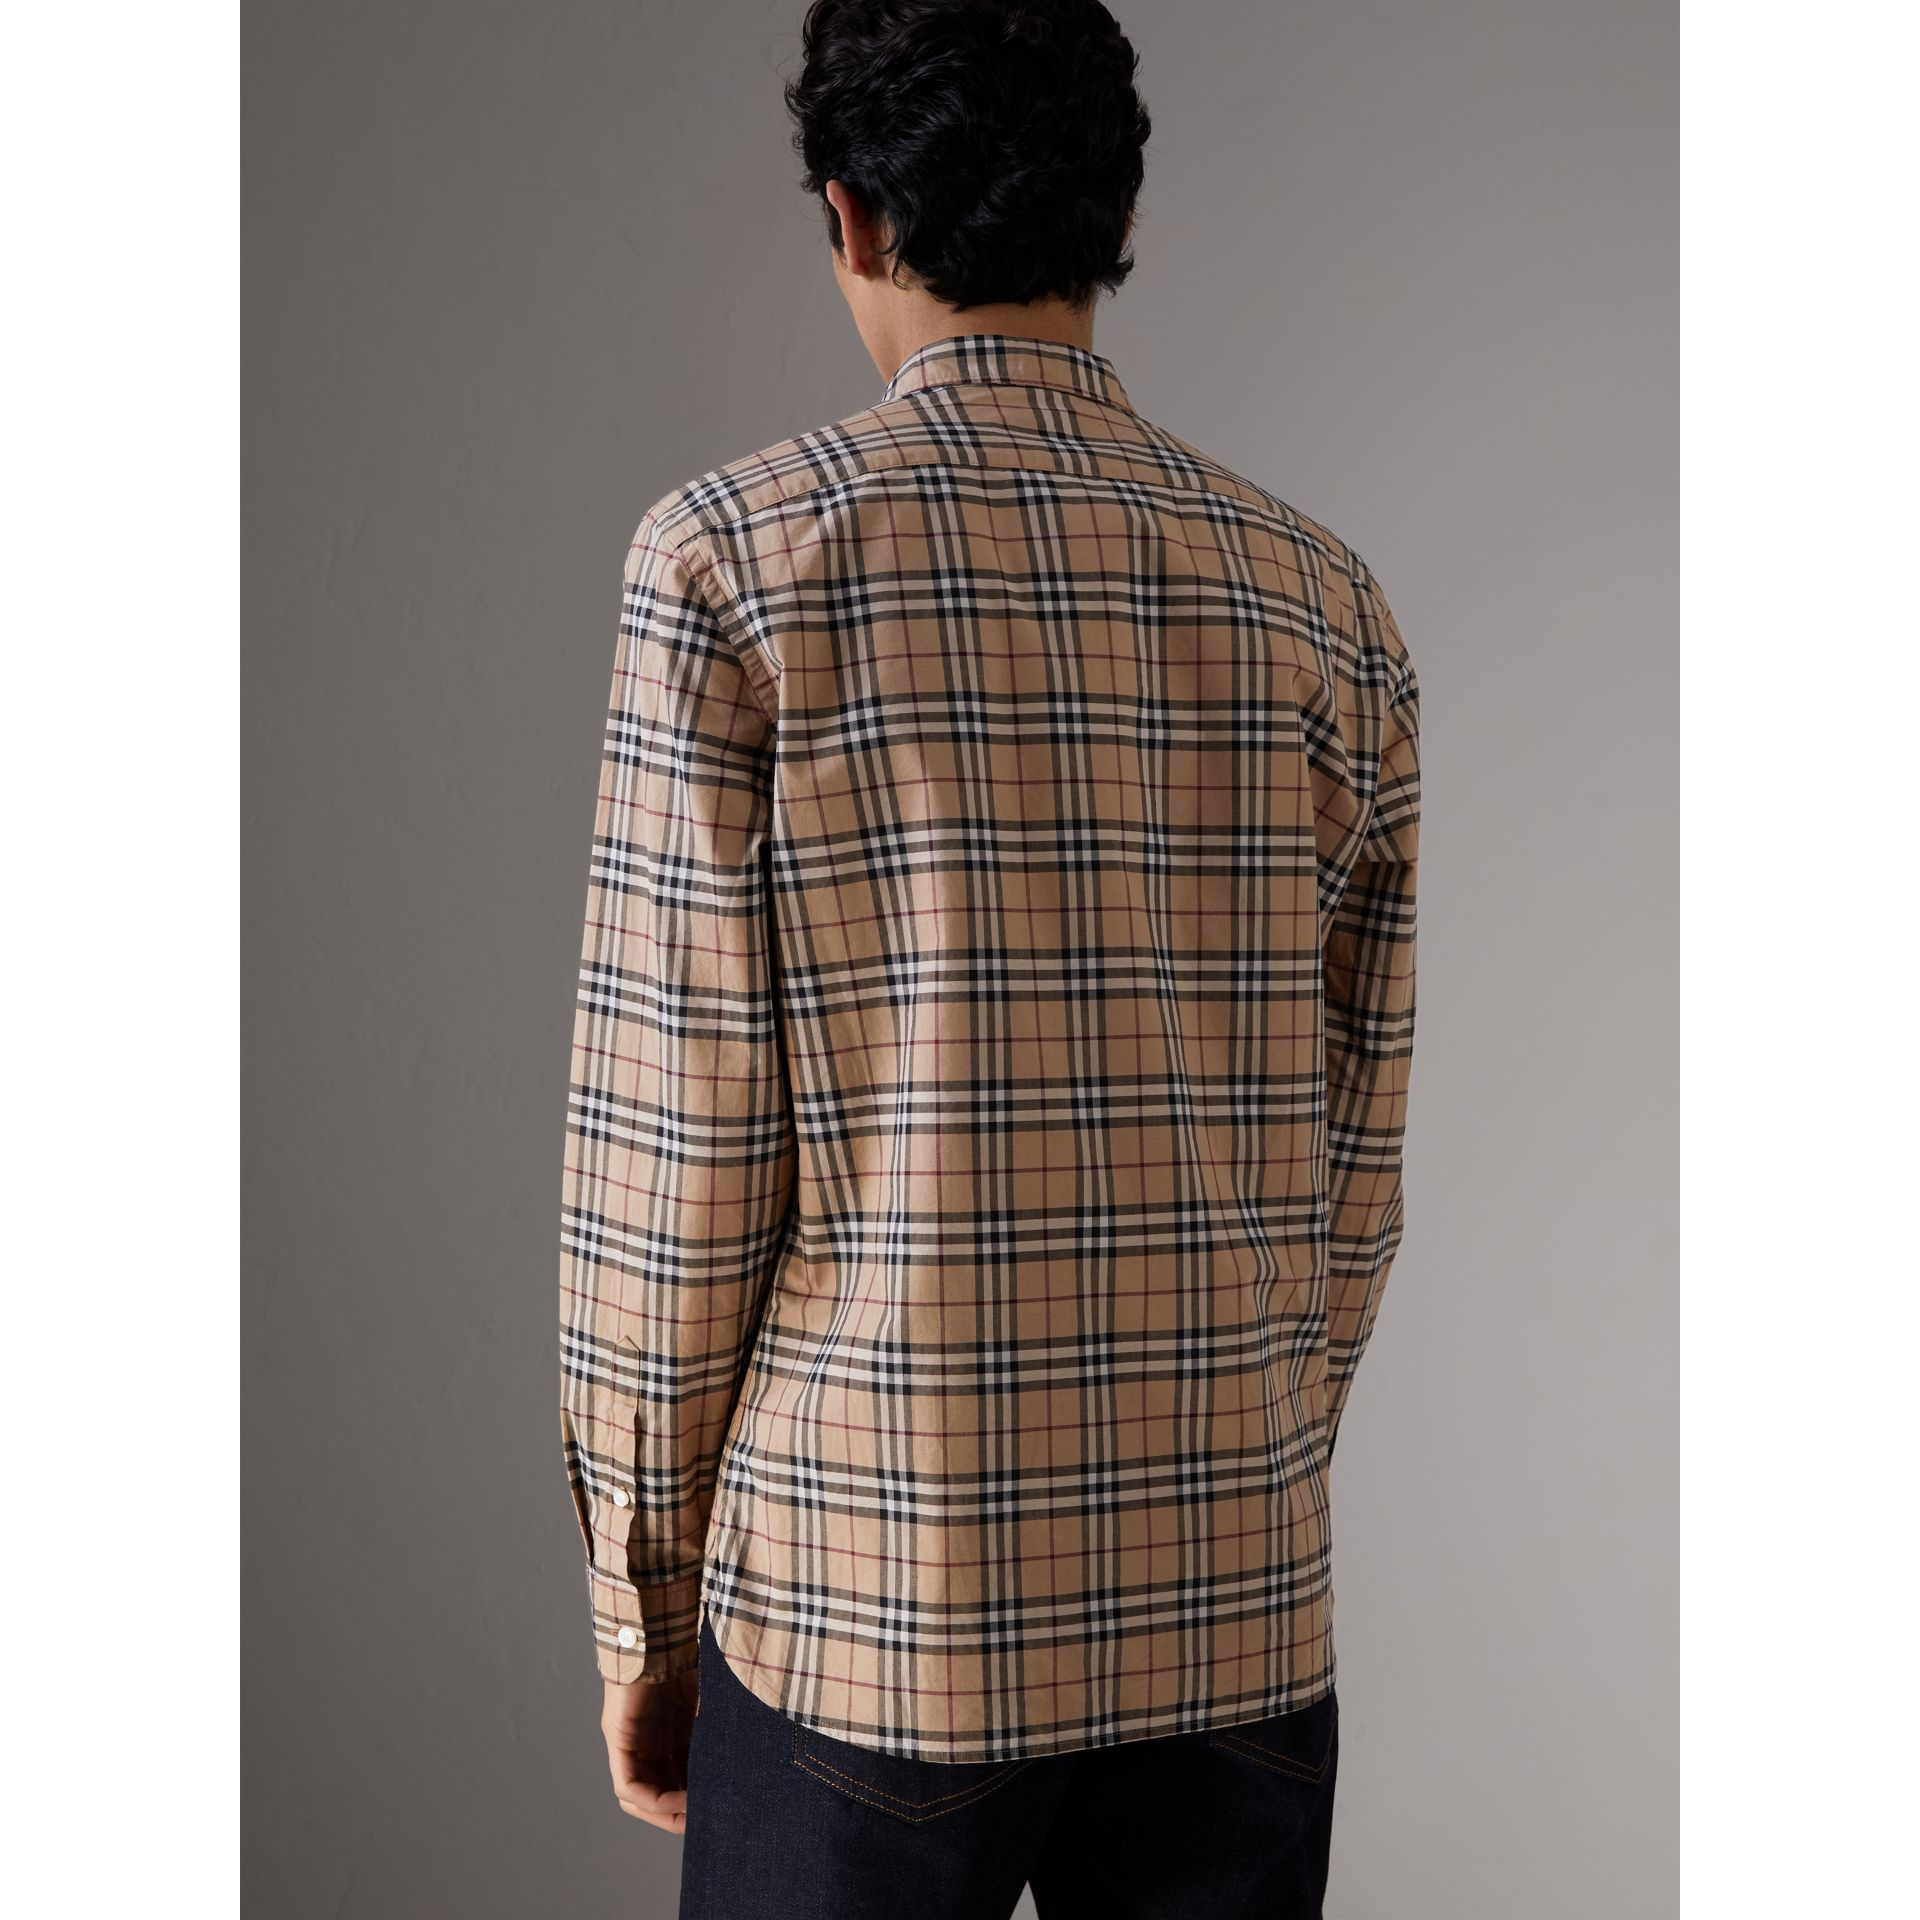 Check Cotton Shirt in Camel - Men | Burberry Canada - gallery image 3